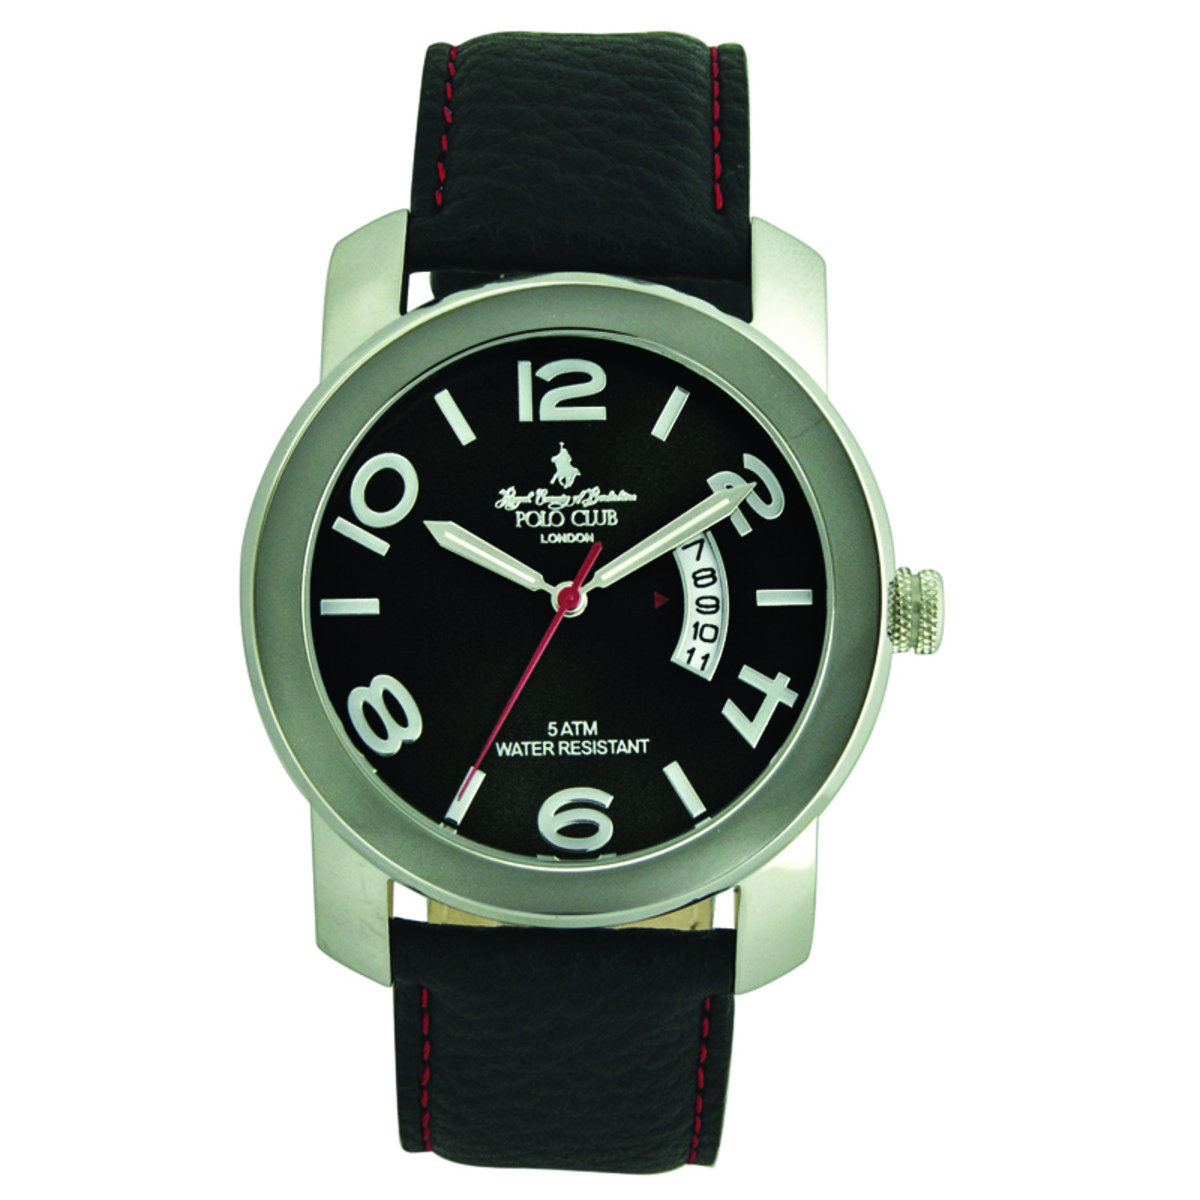 PL143-701SV Watch